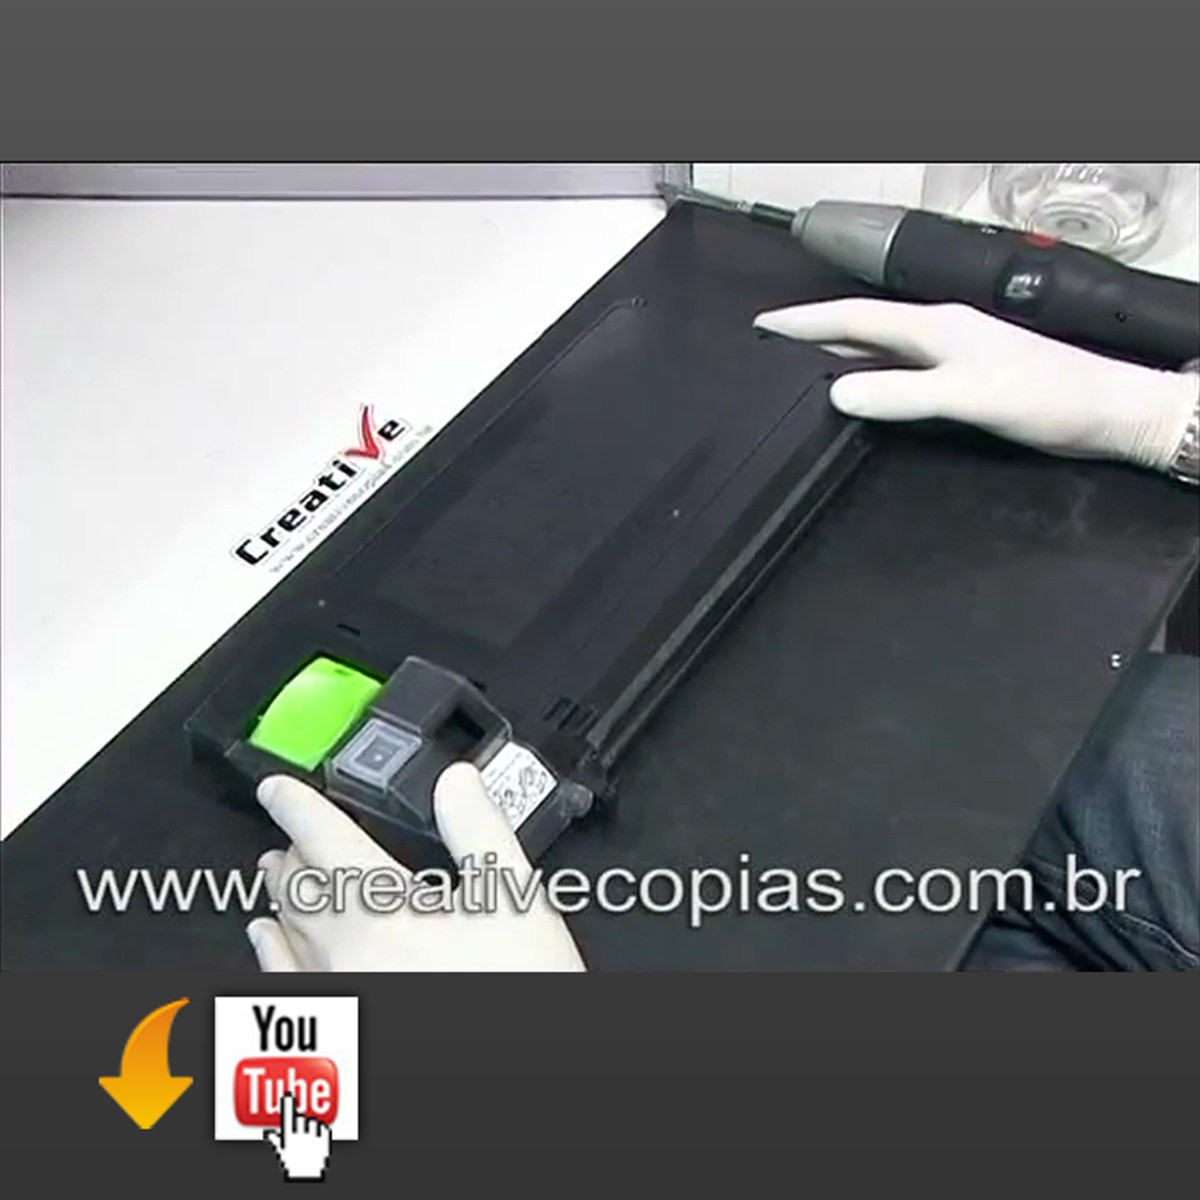 Video Aula Recarga Toner Sharp AL1000, 1530, 1641, 1642, 2040, Xerox XD100, Olivetti 9912